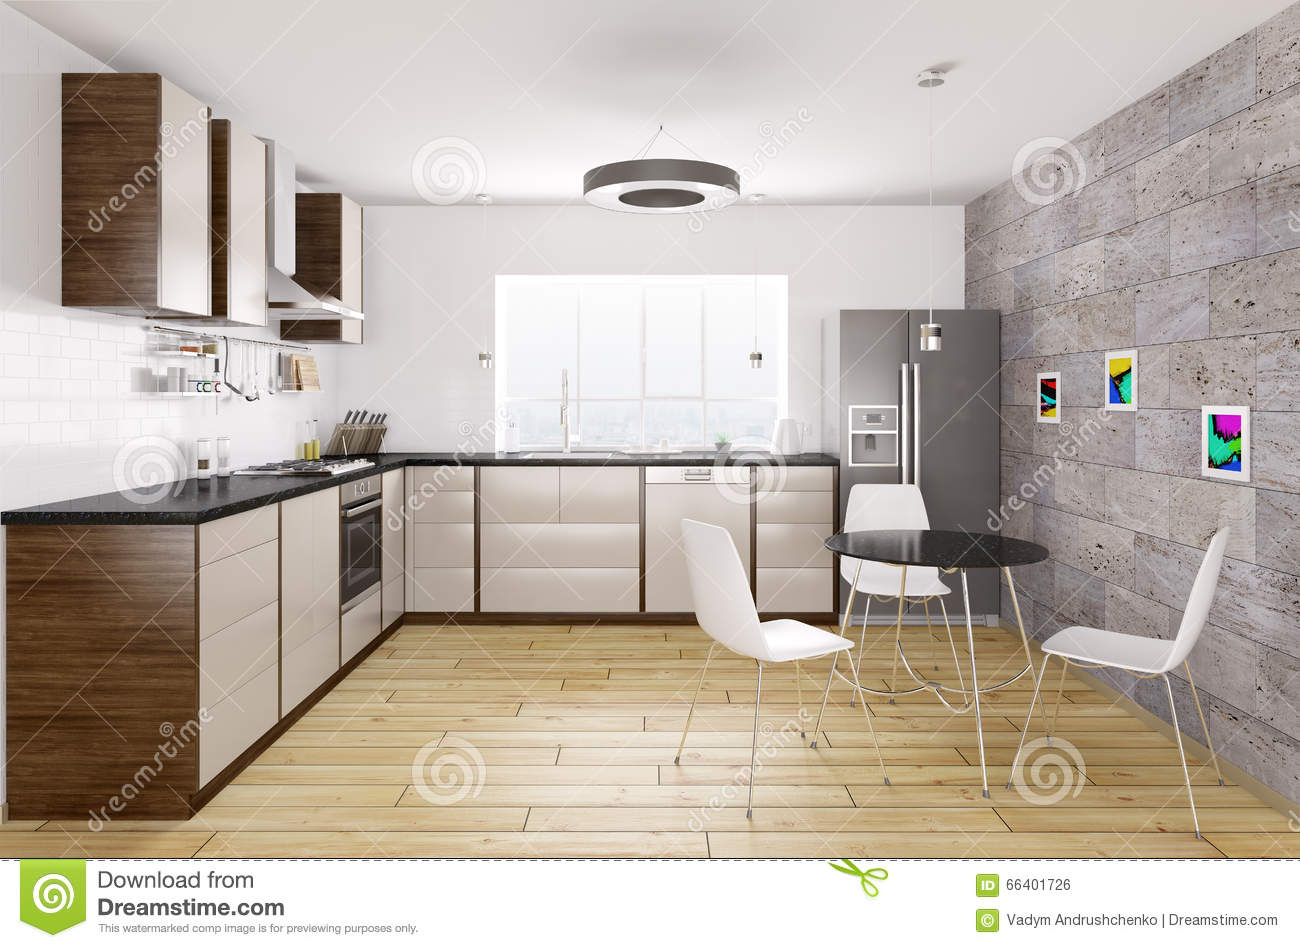 Modern kitchen interior 3d rendering stock illustration for Modern kitchen interior